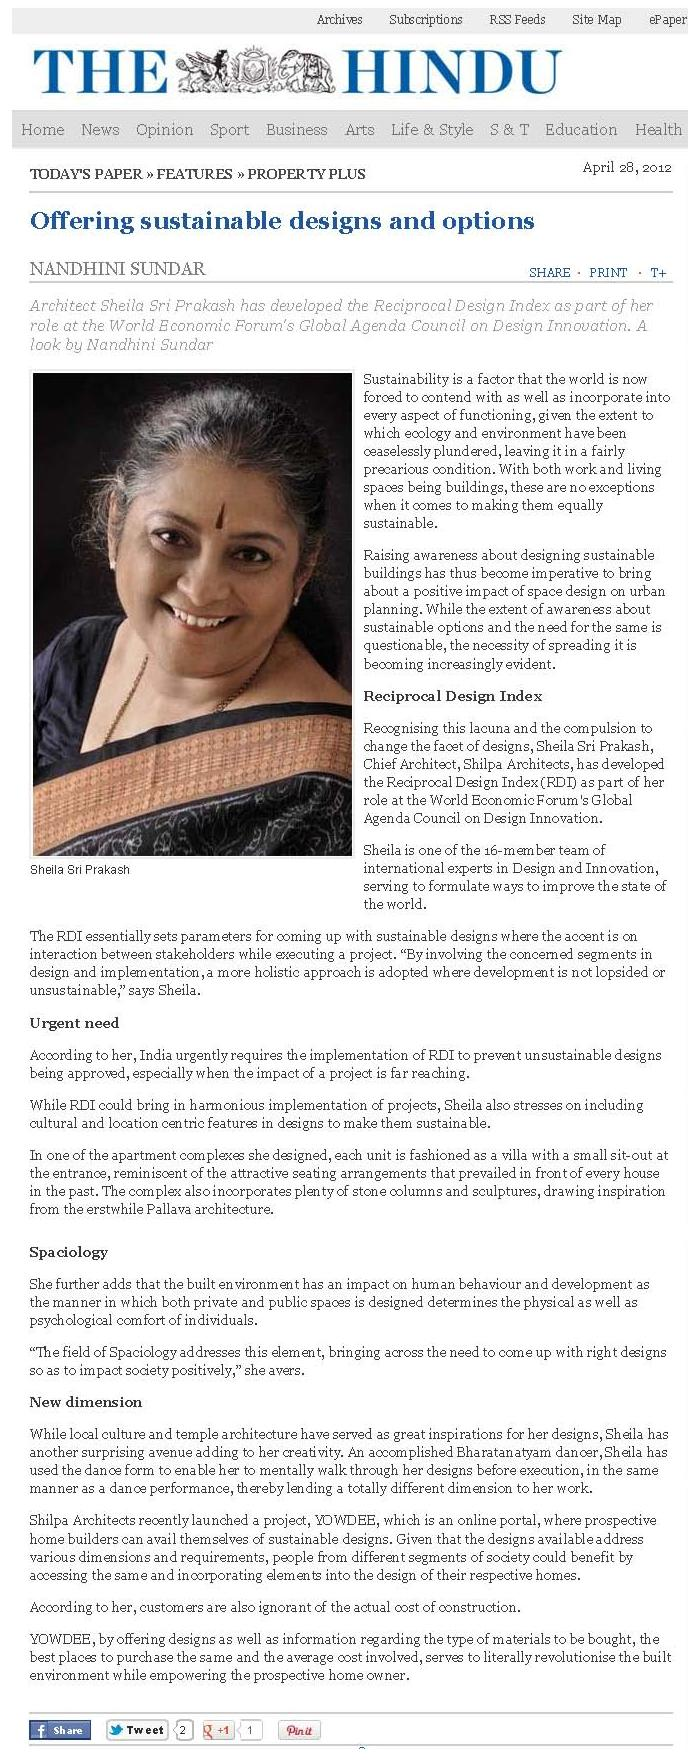 The Hindu, Apr 28 2012: Offering sustainable designs and options